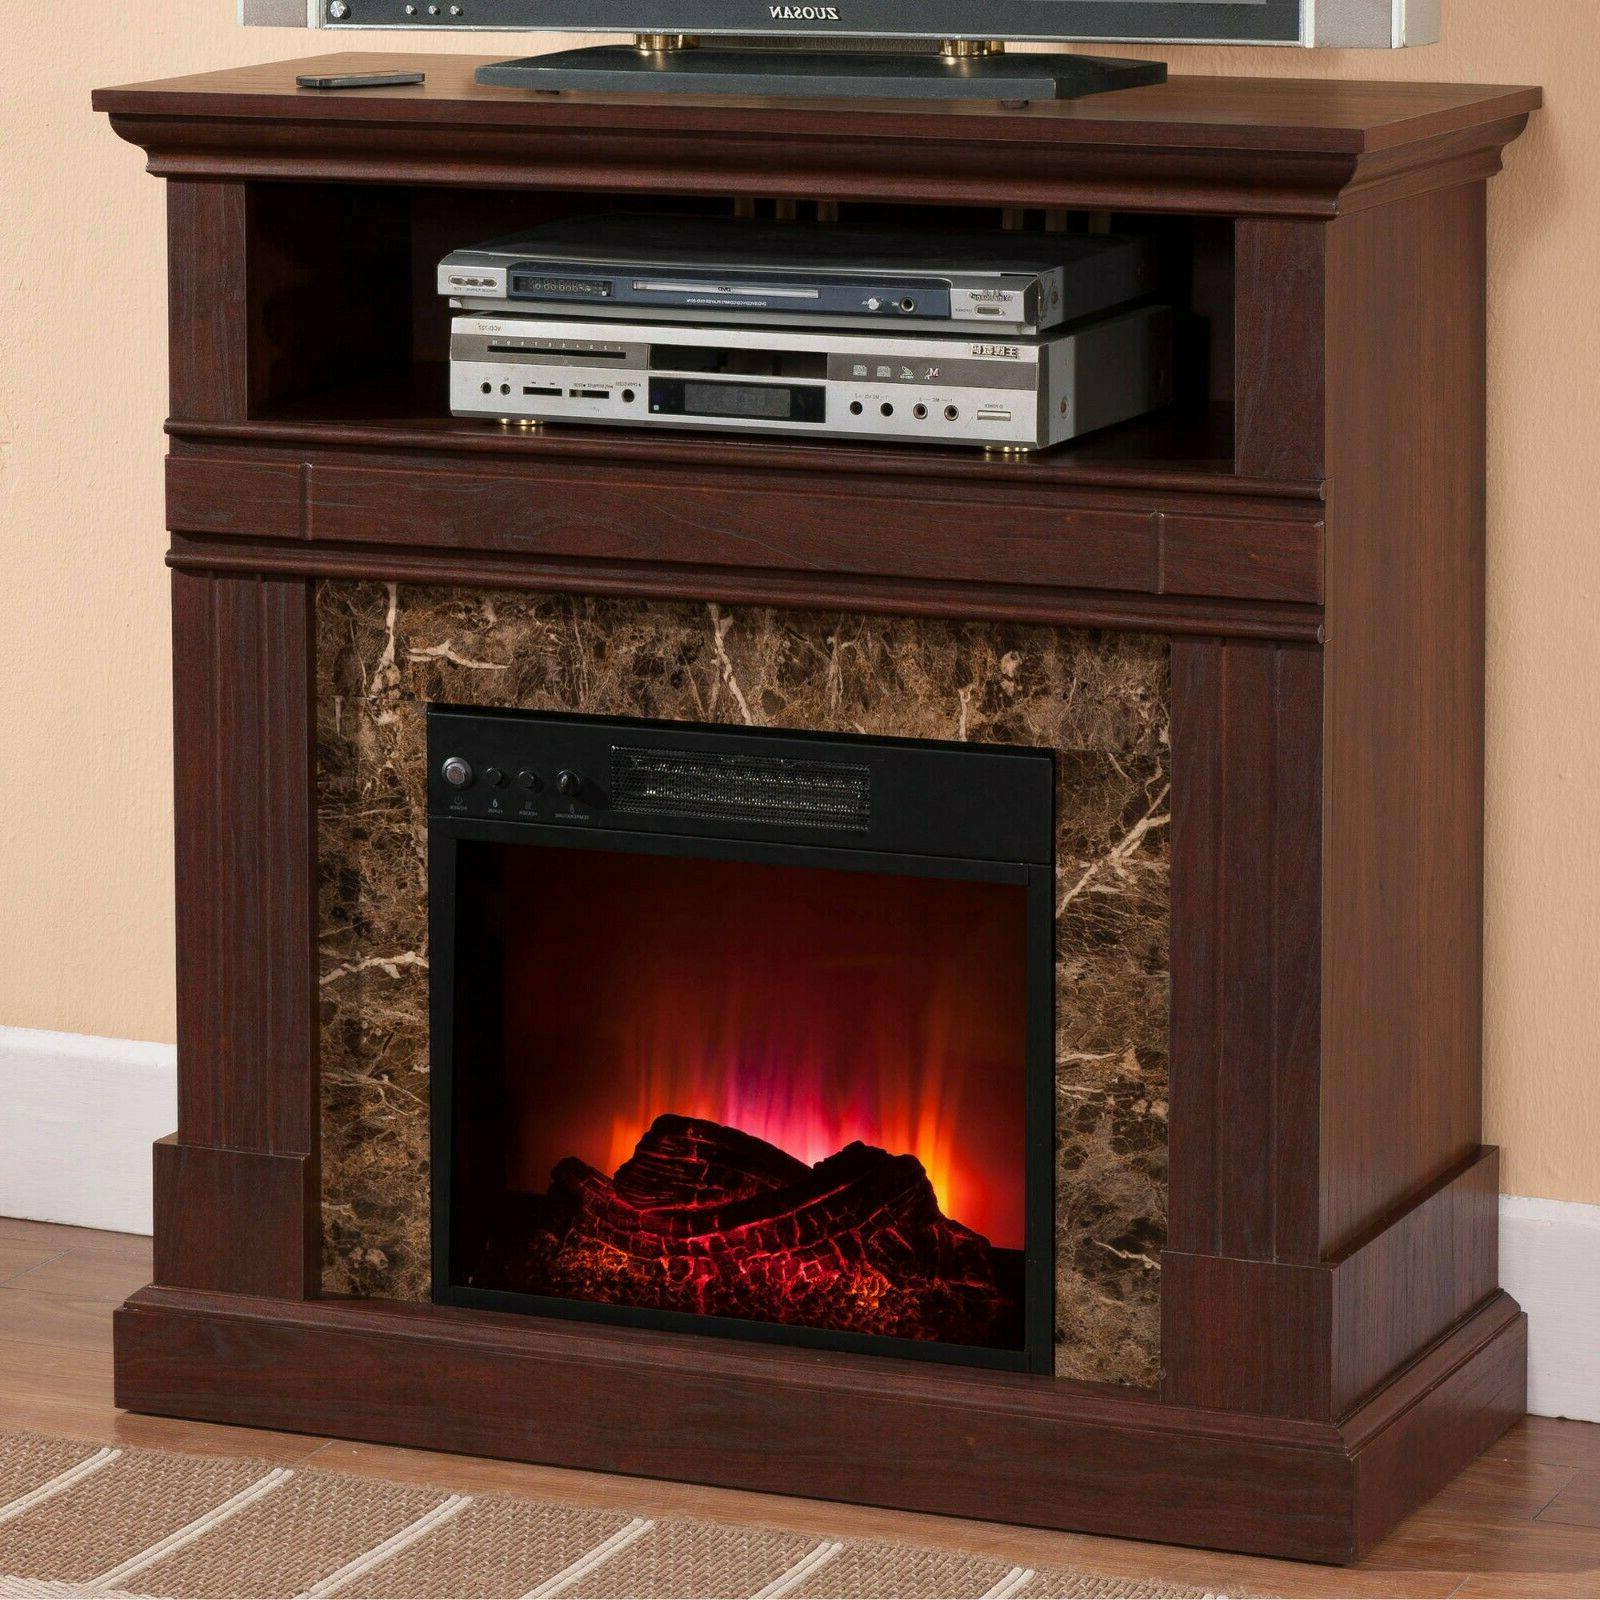 Electric Fireplace with Mantle Walnut Finish LED Flames Heat